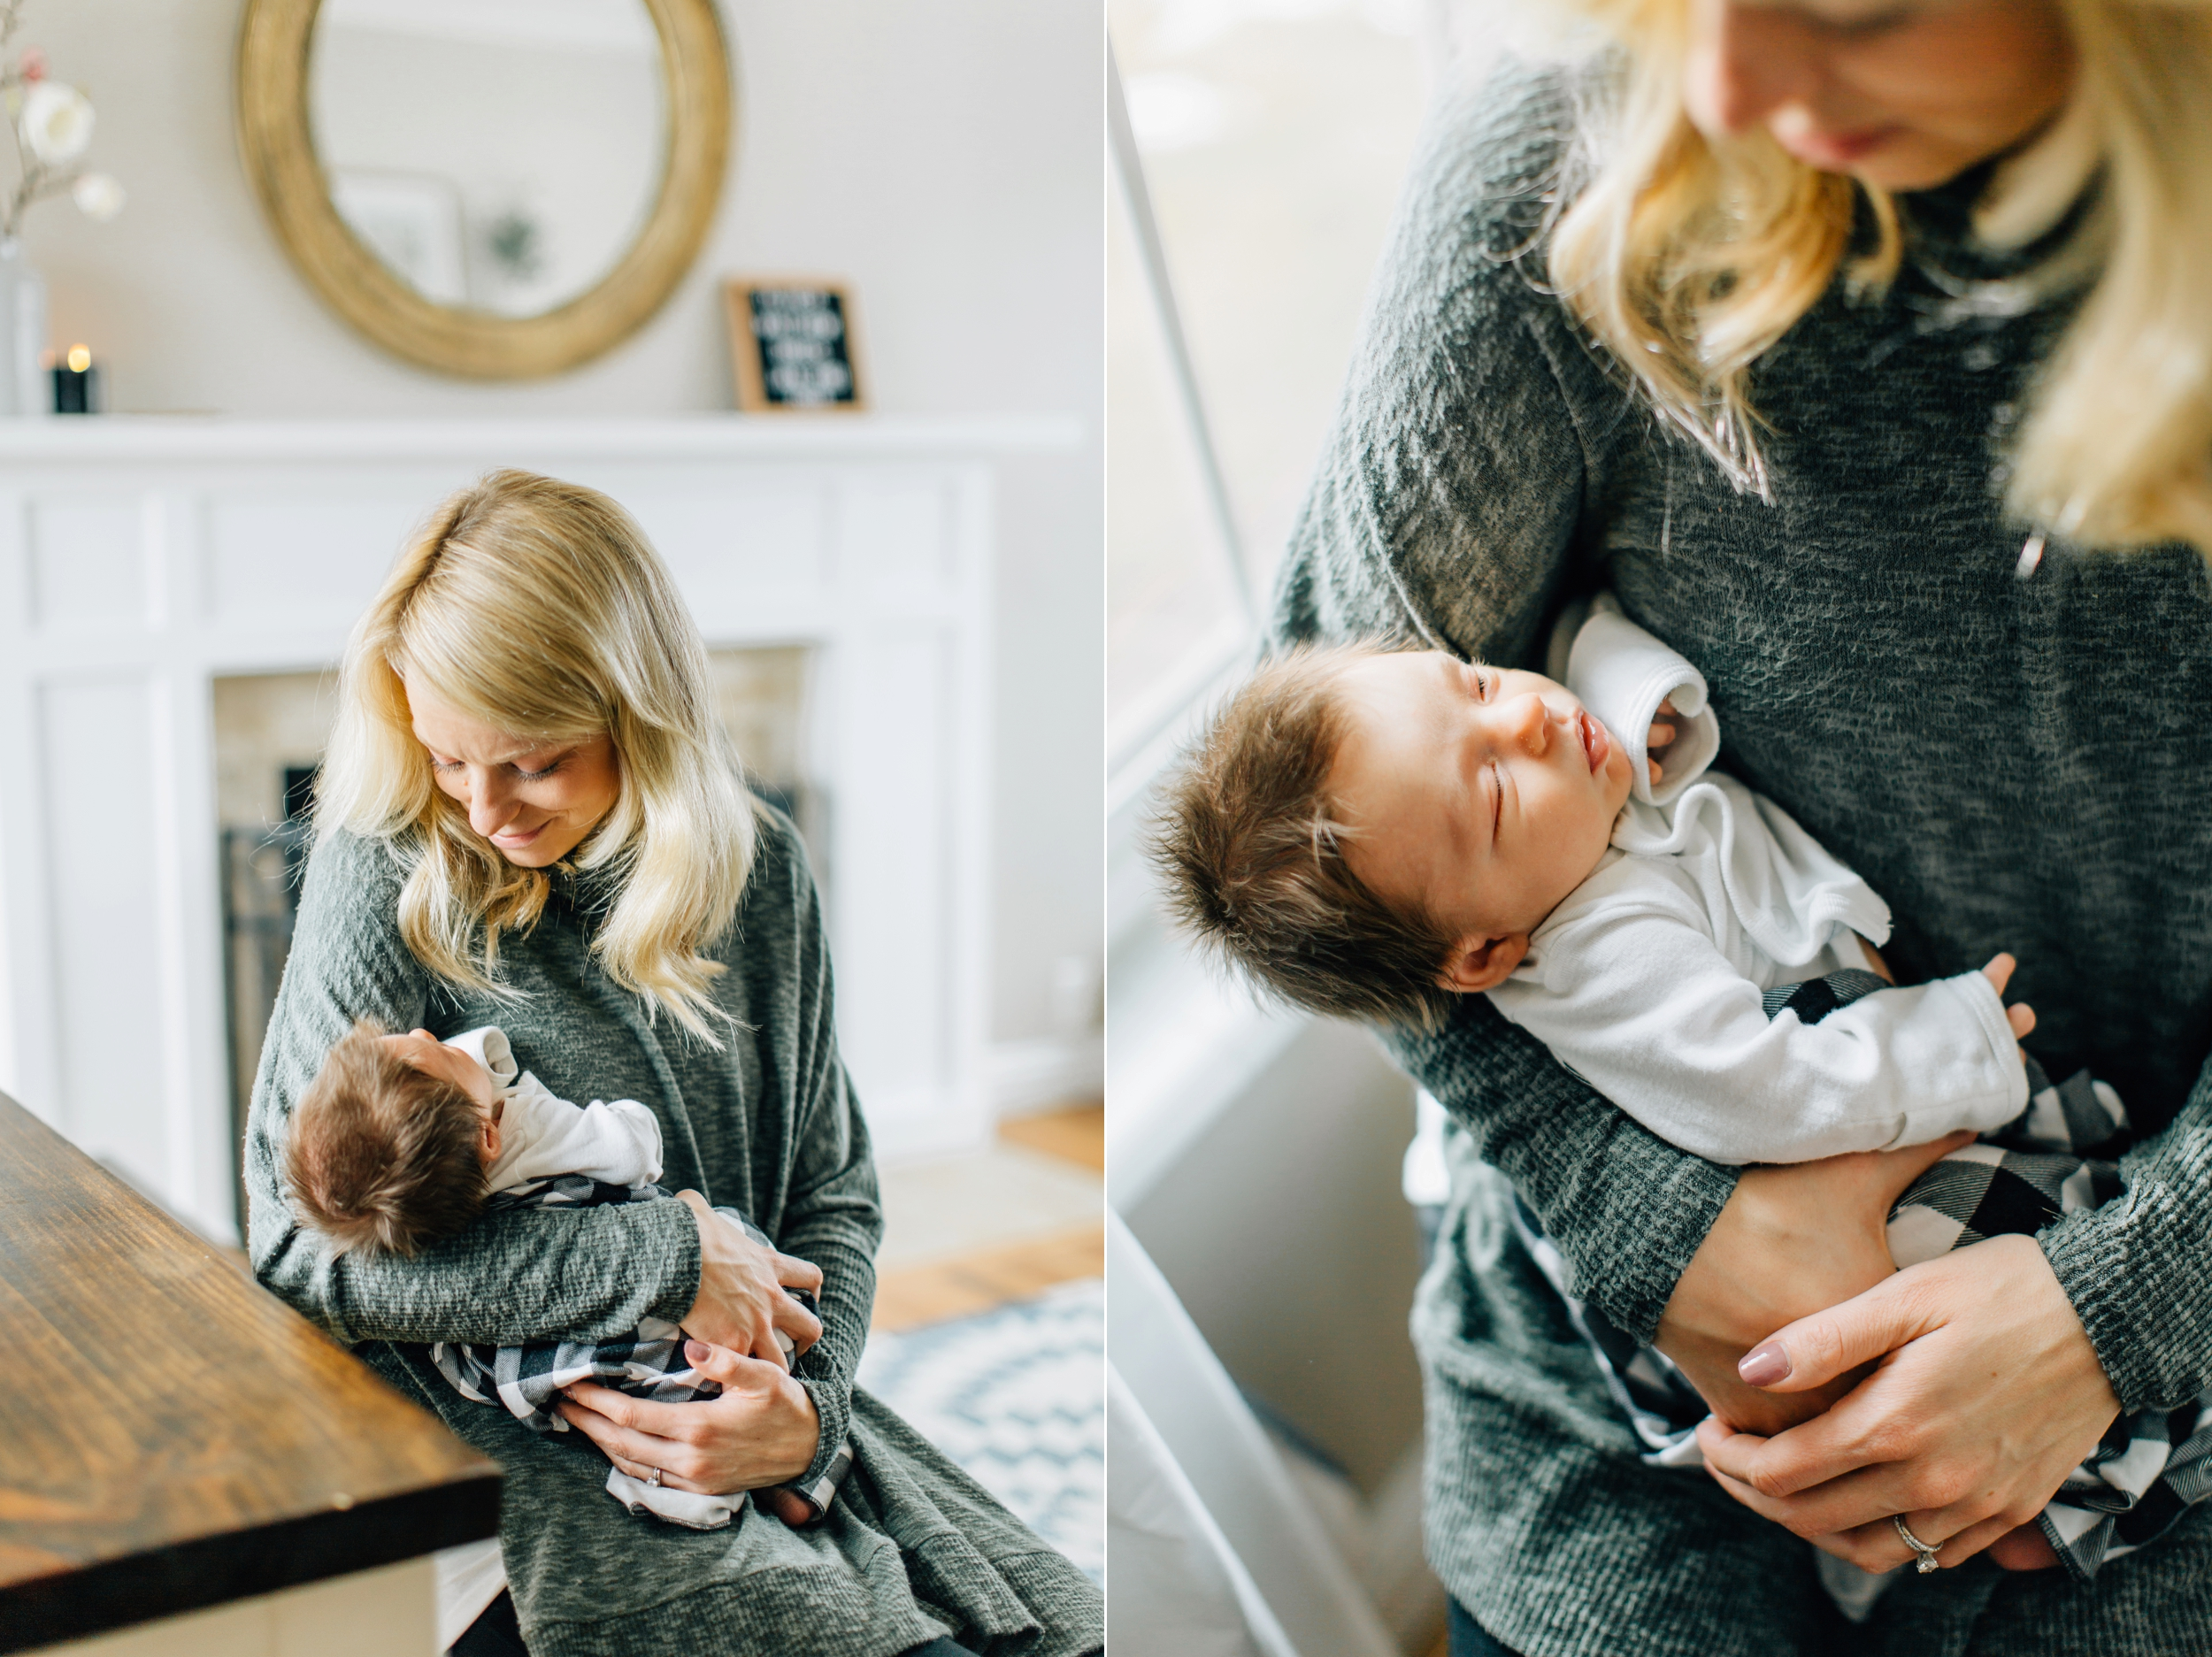 BreAnneWestonPhotographyDreesFamily4.jpg